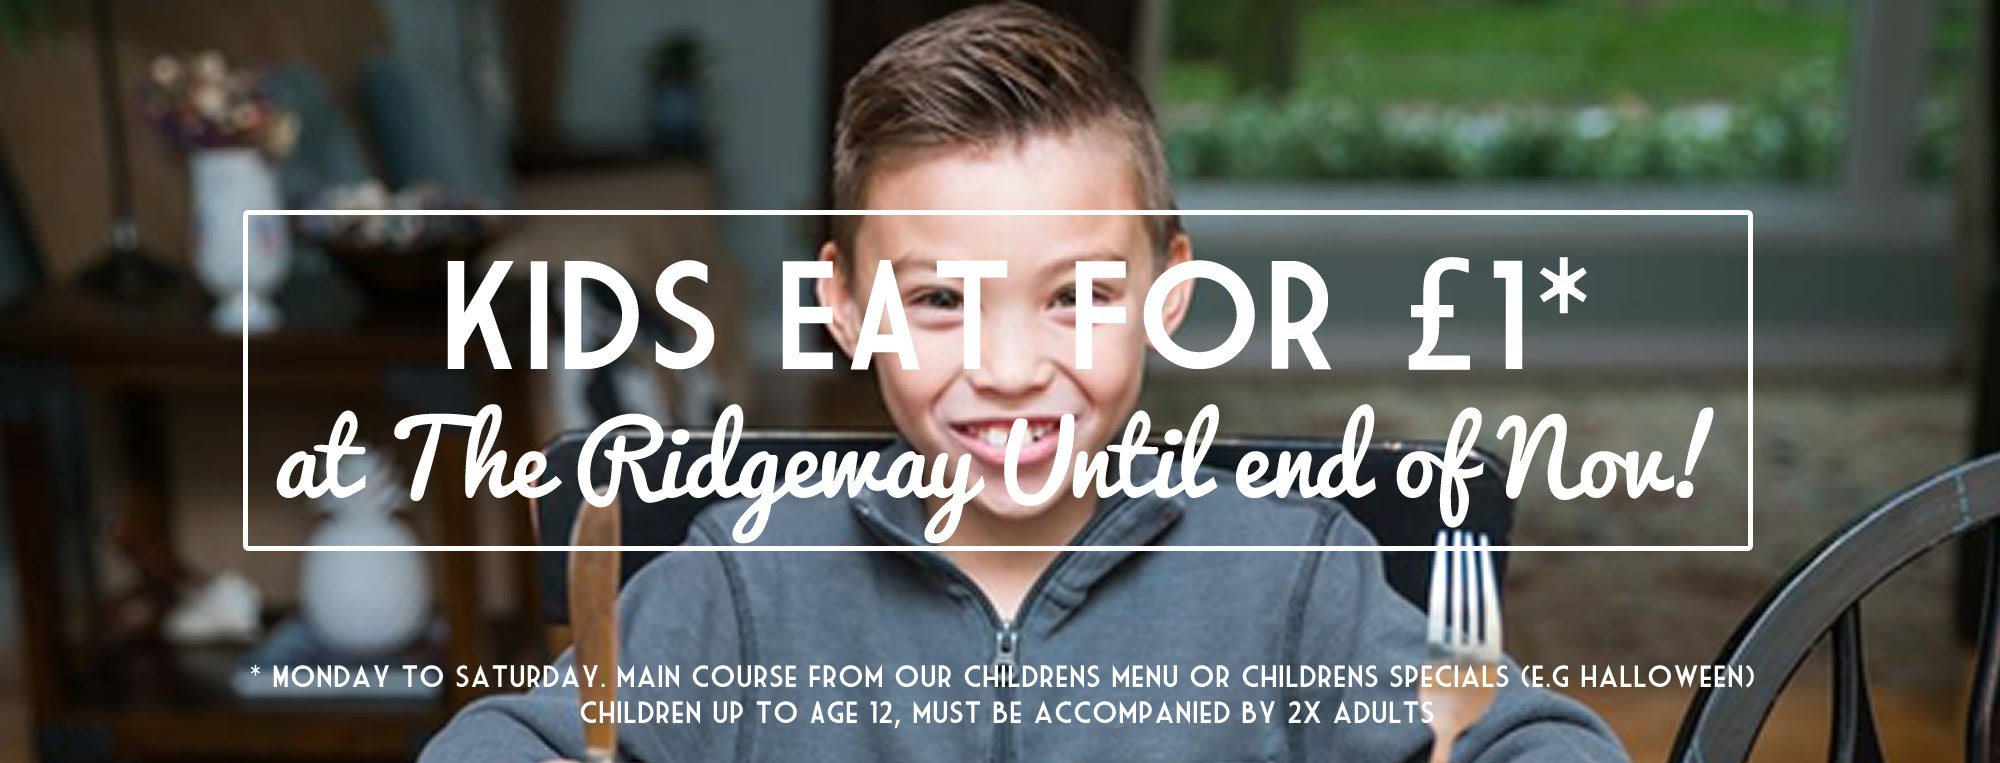 Kids eat for £1 until the end of November Monday to Saturday at The Ridgeway in Newport